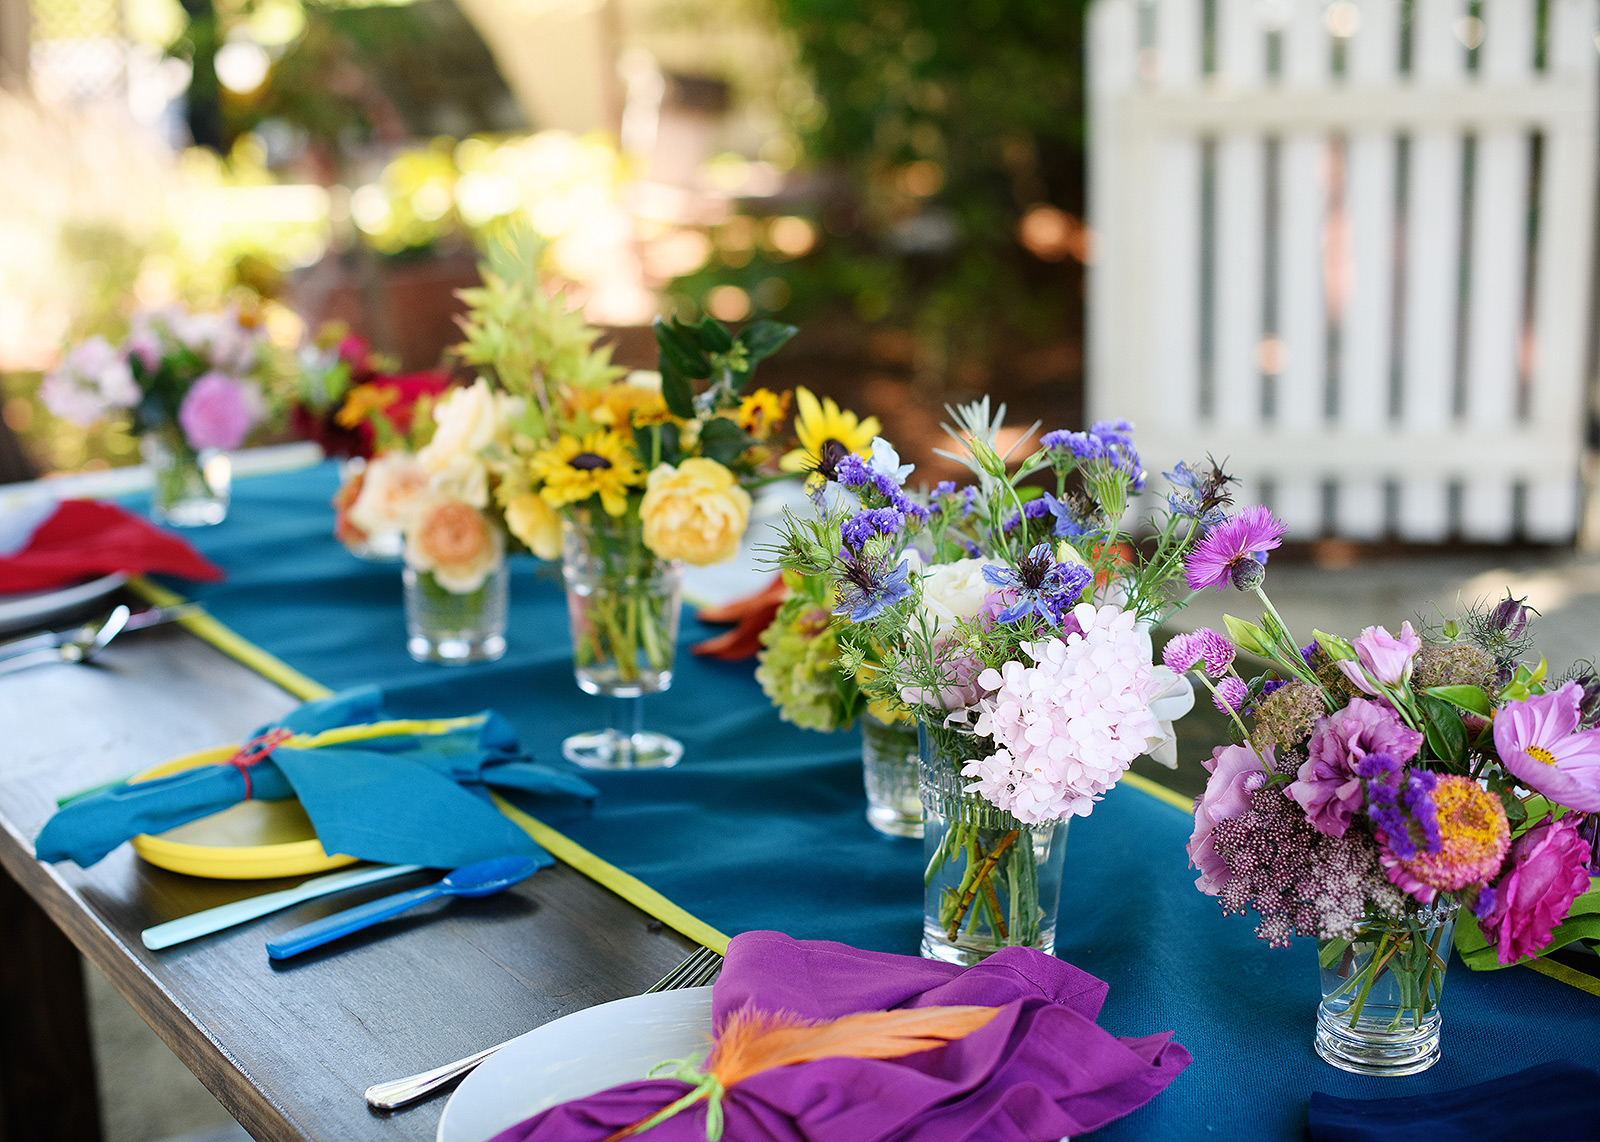 First birthday party tablescape with bright floral arrangements and napkins